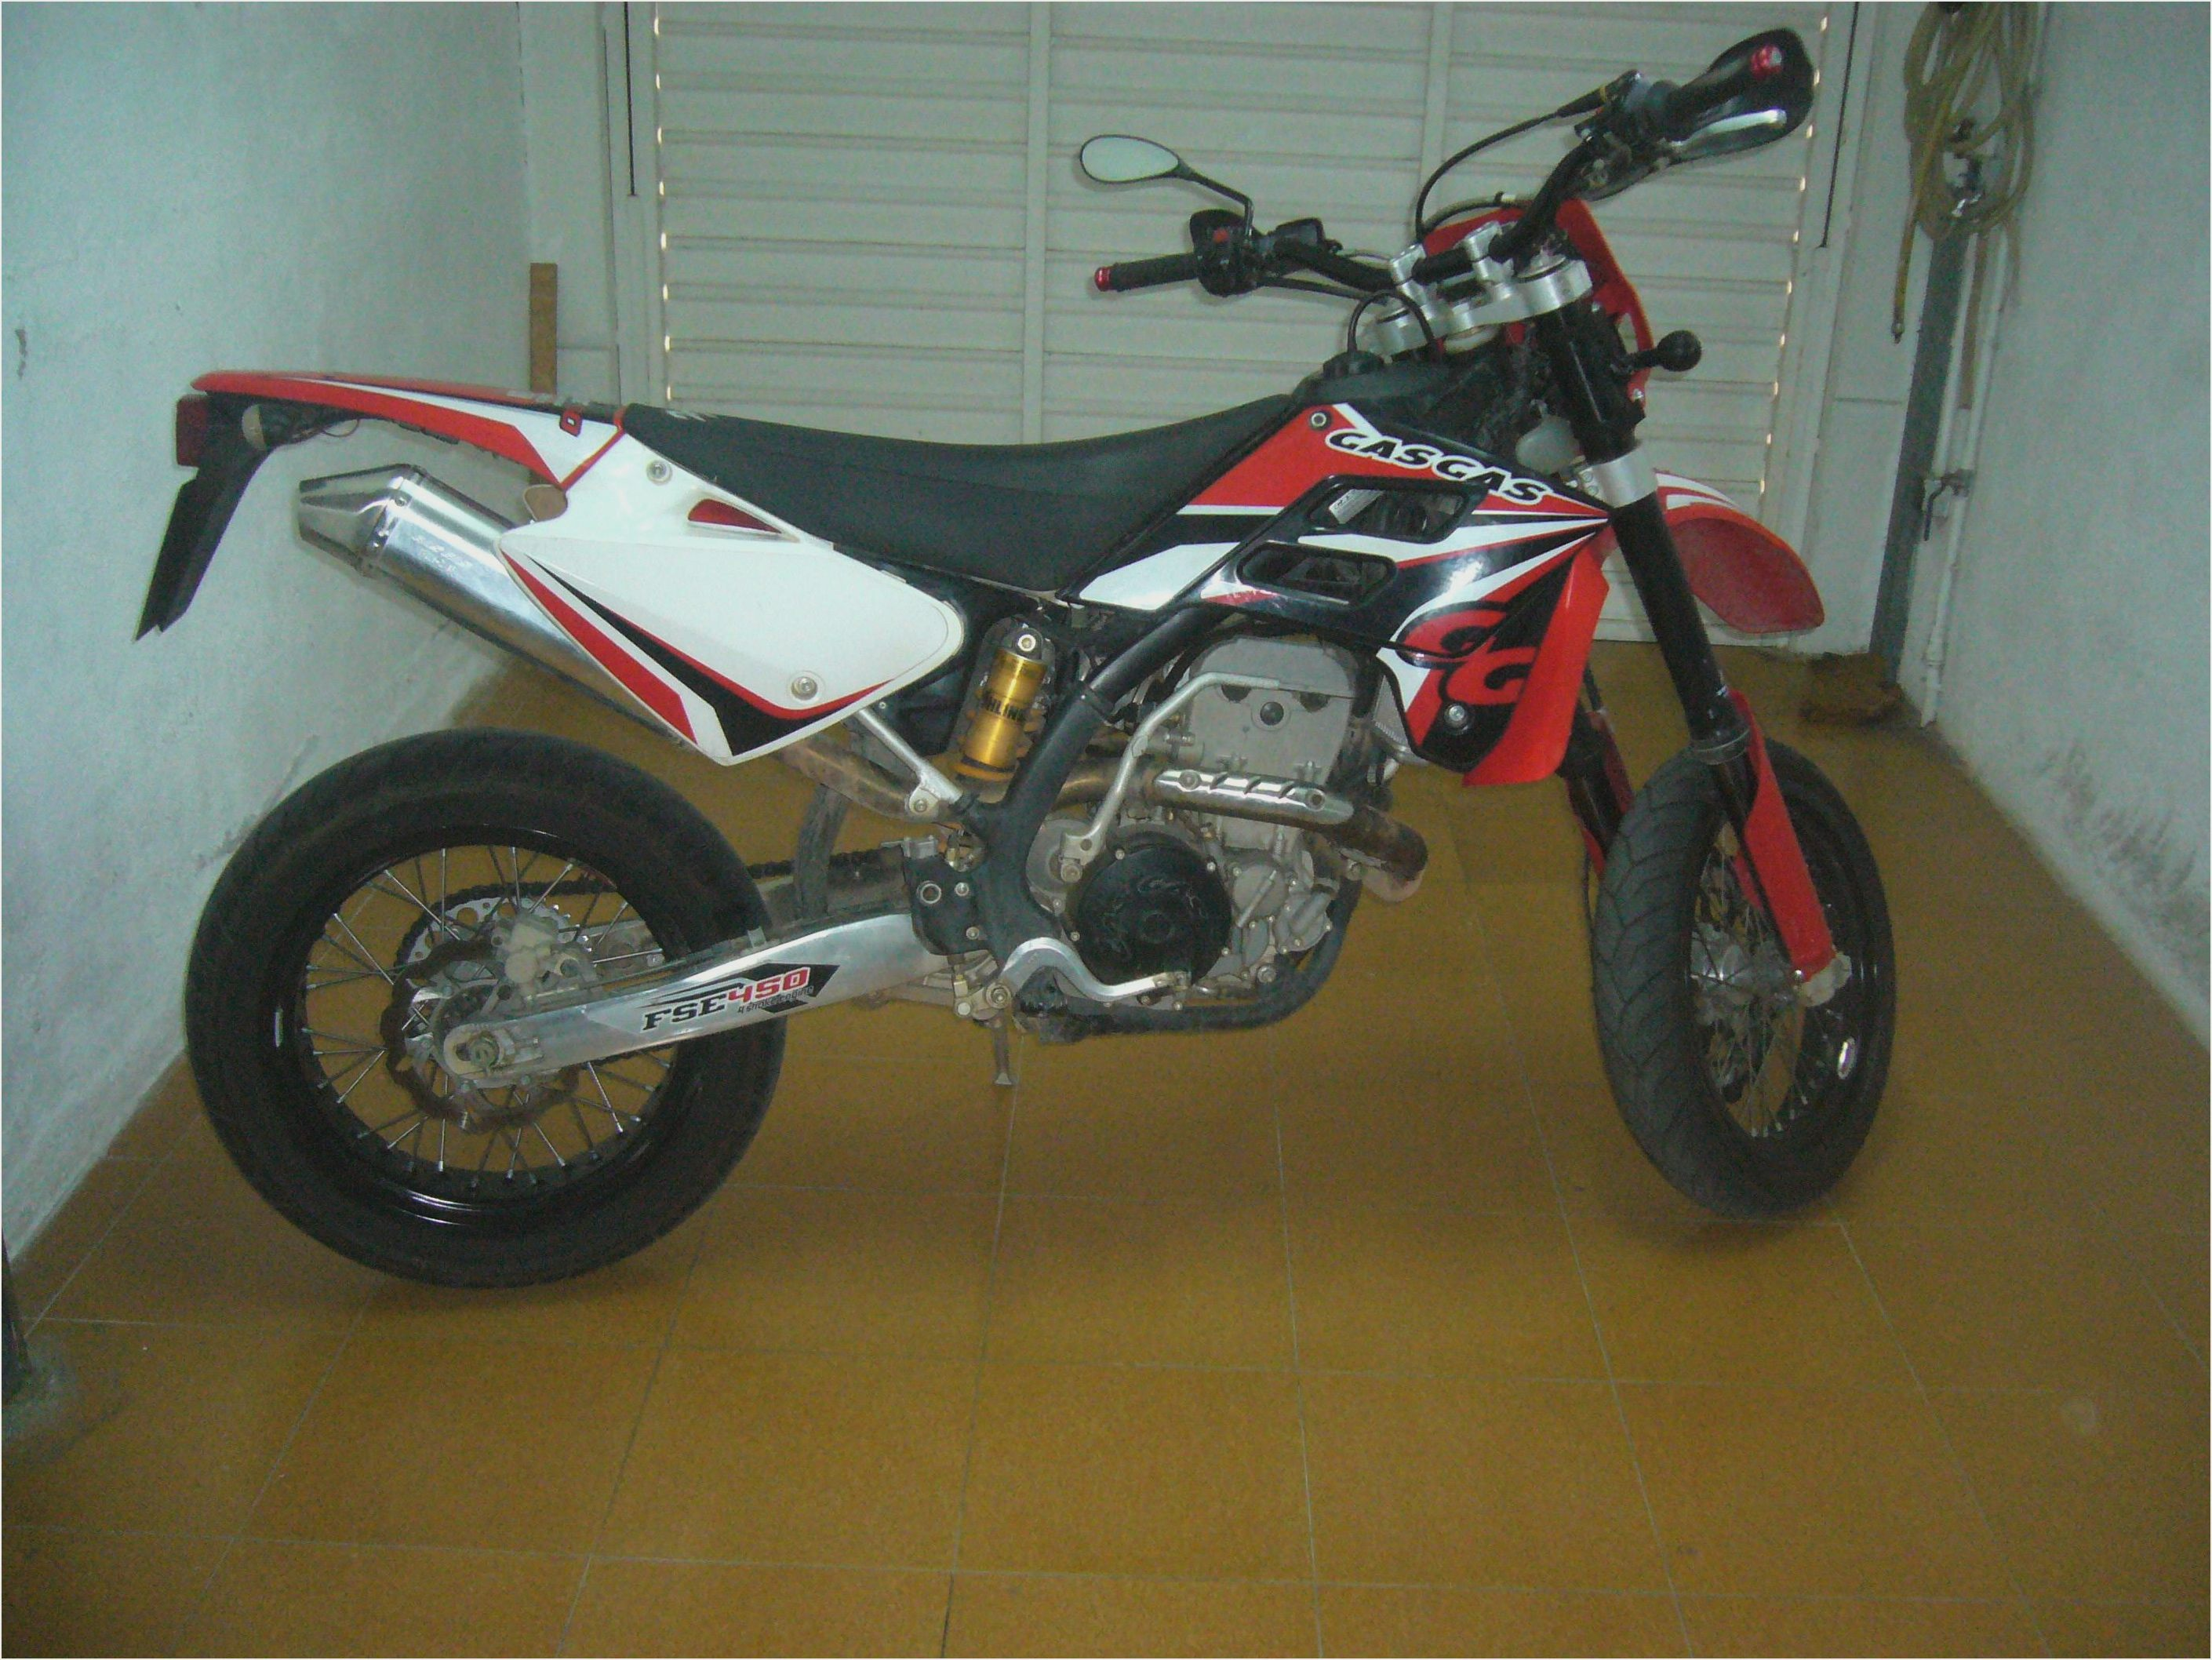 GAS GAS SM 450 images #72137